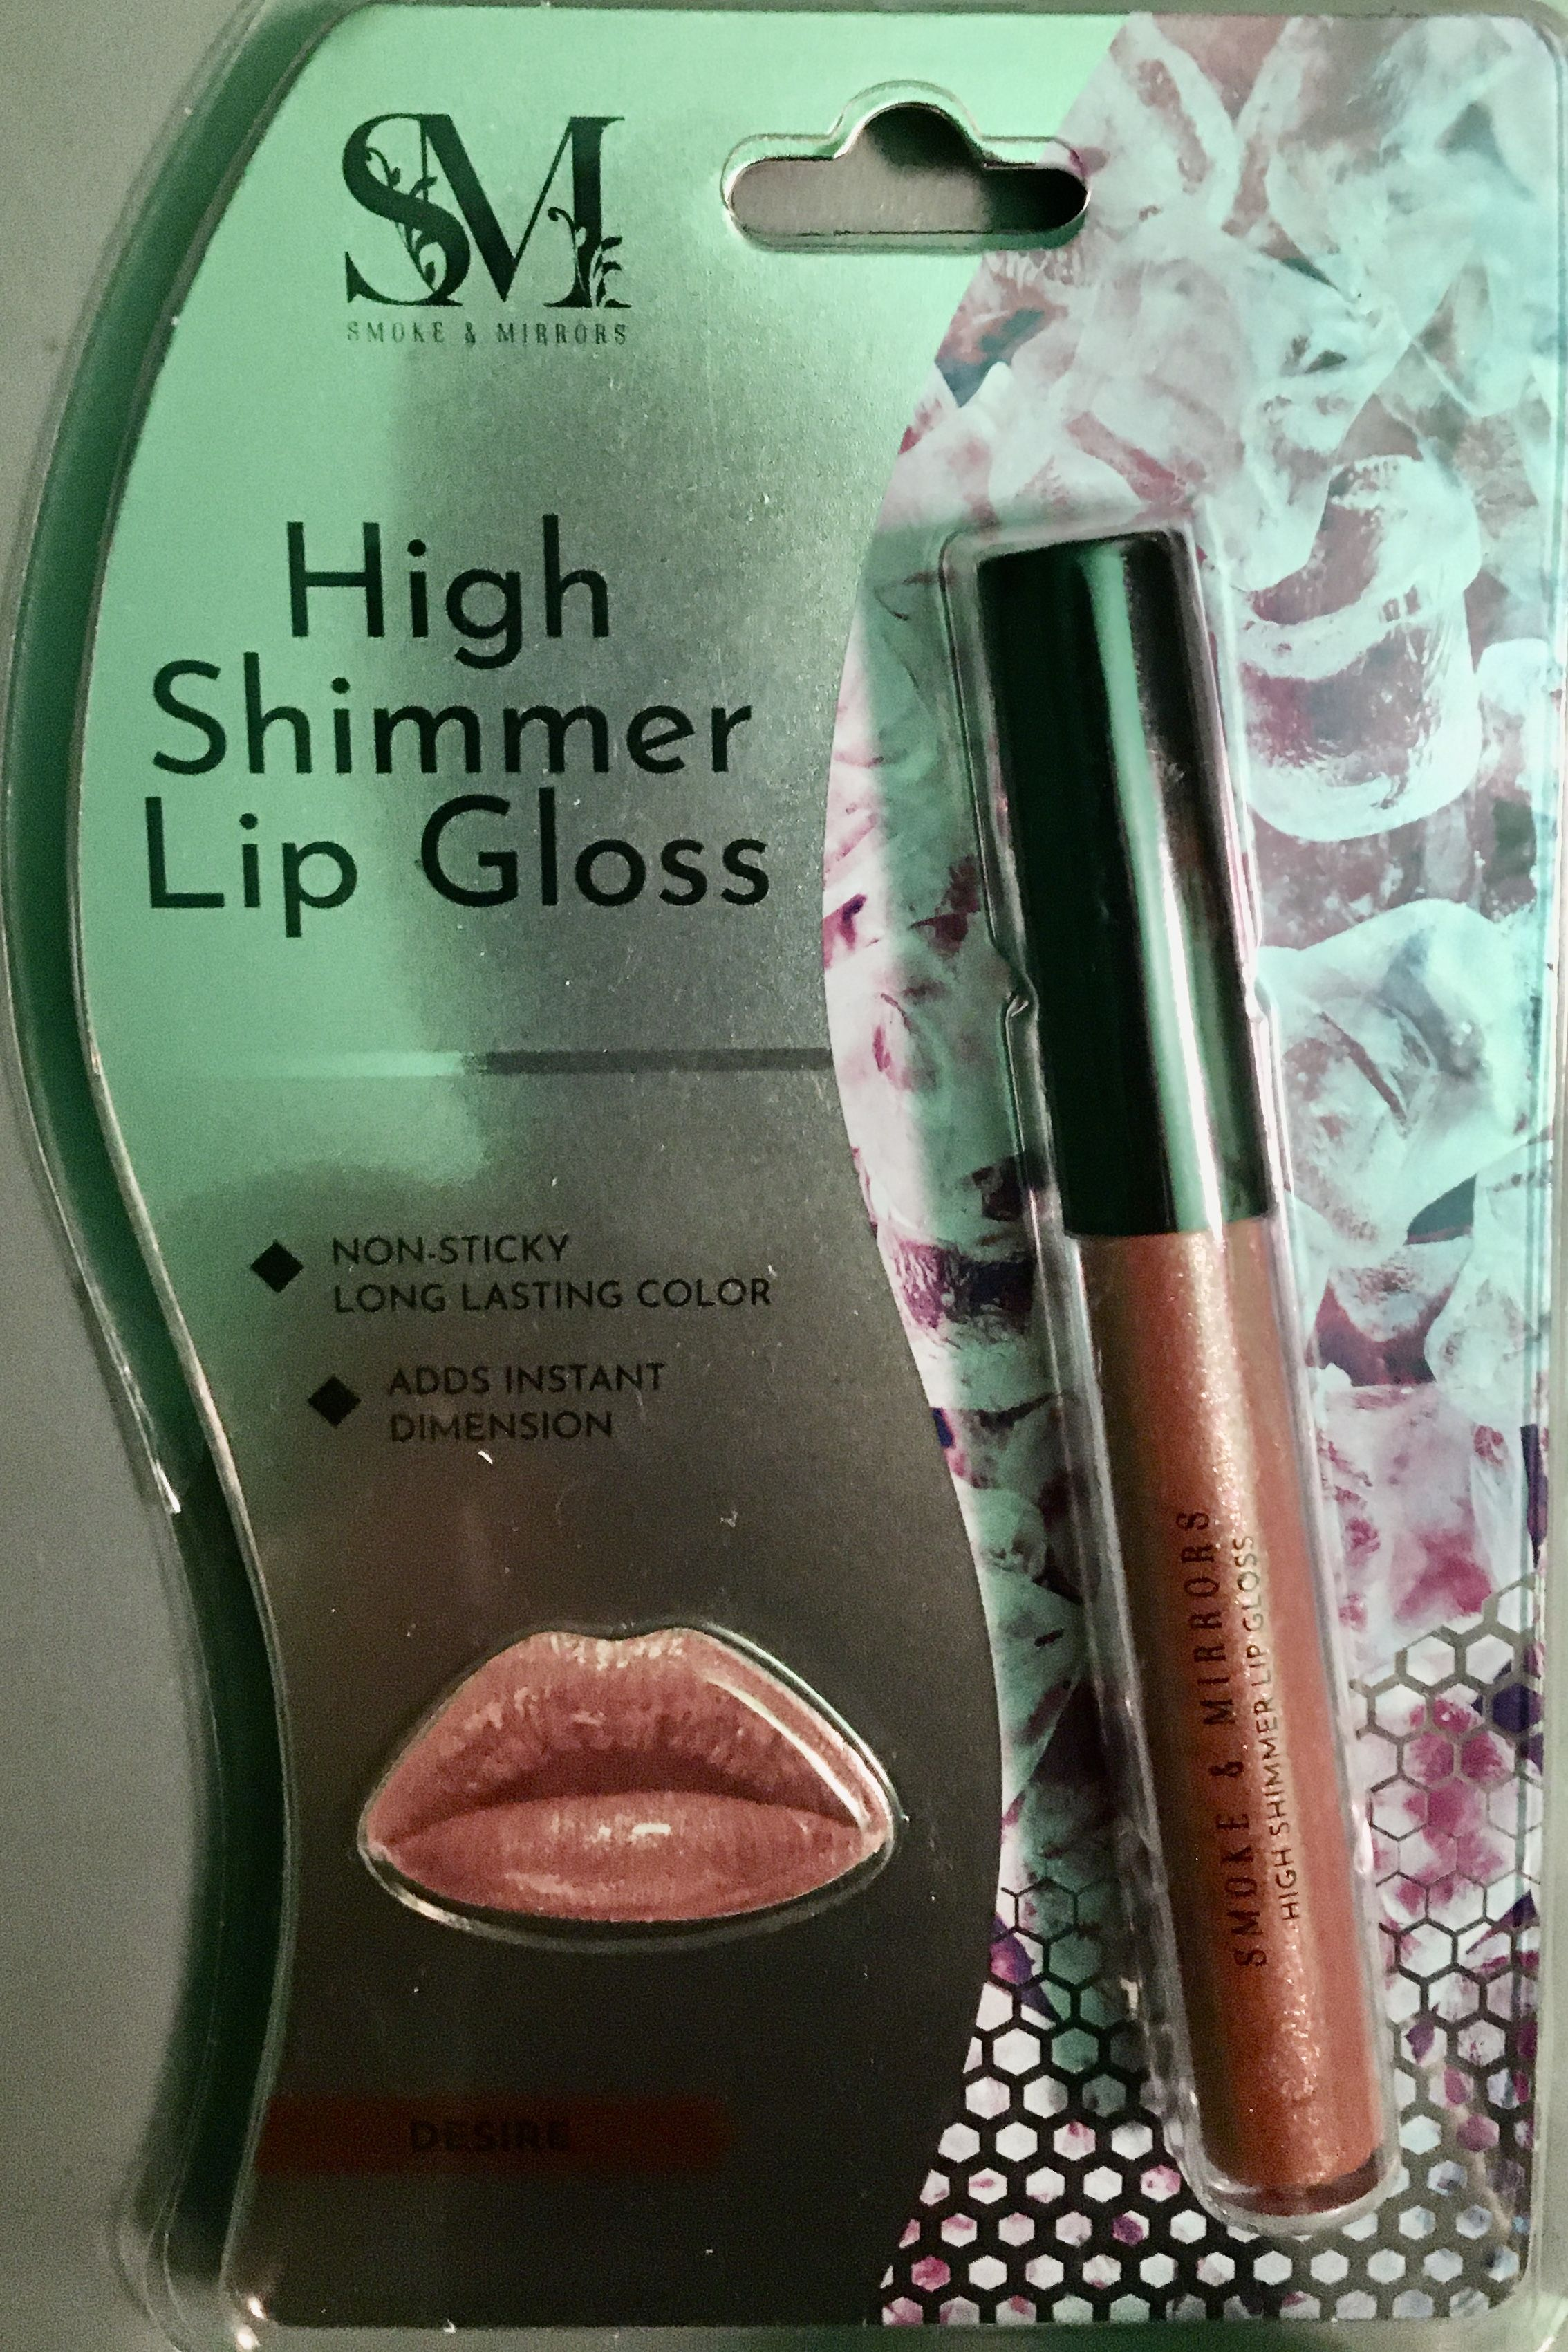 99 cent store Stockton March Lane Shimmer lip gloss, Lip